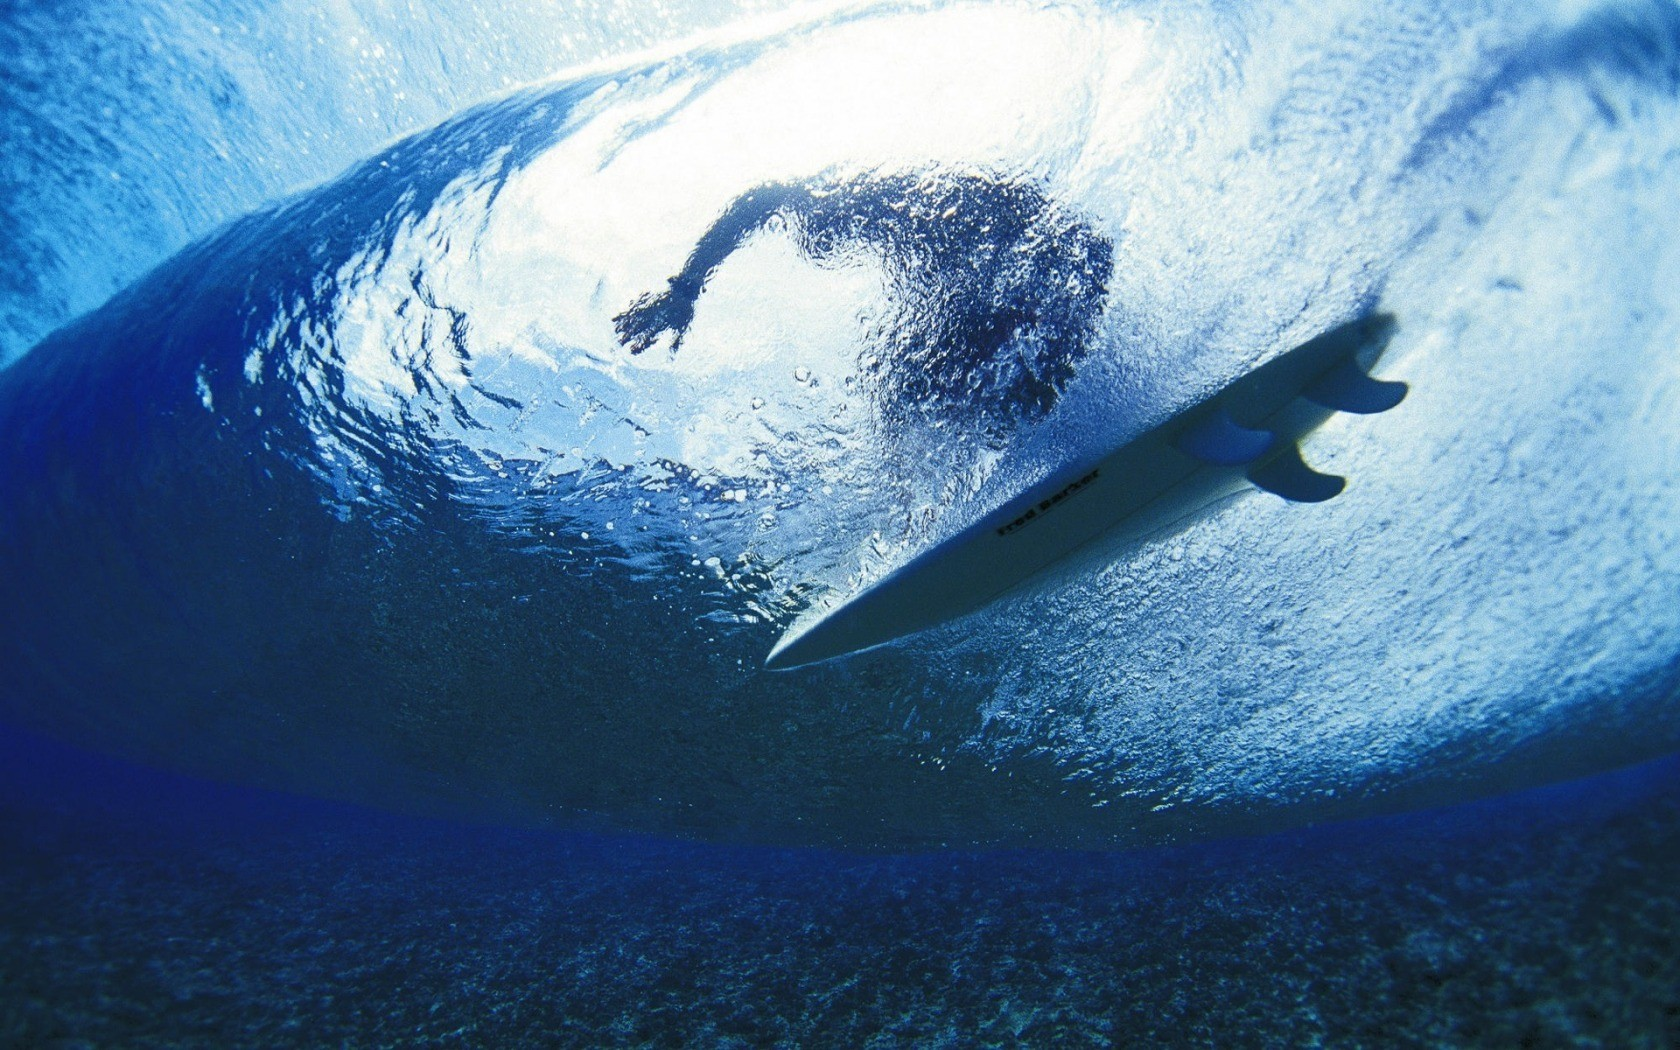 Waves Surfing Wallpaper 1680x1050 Waves Surfing Surfers 1680x1050